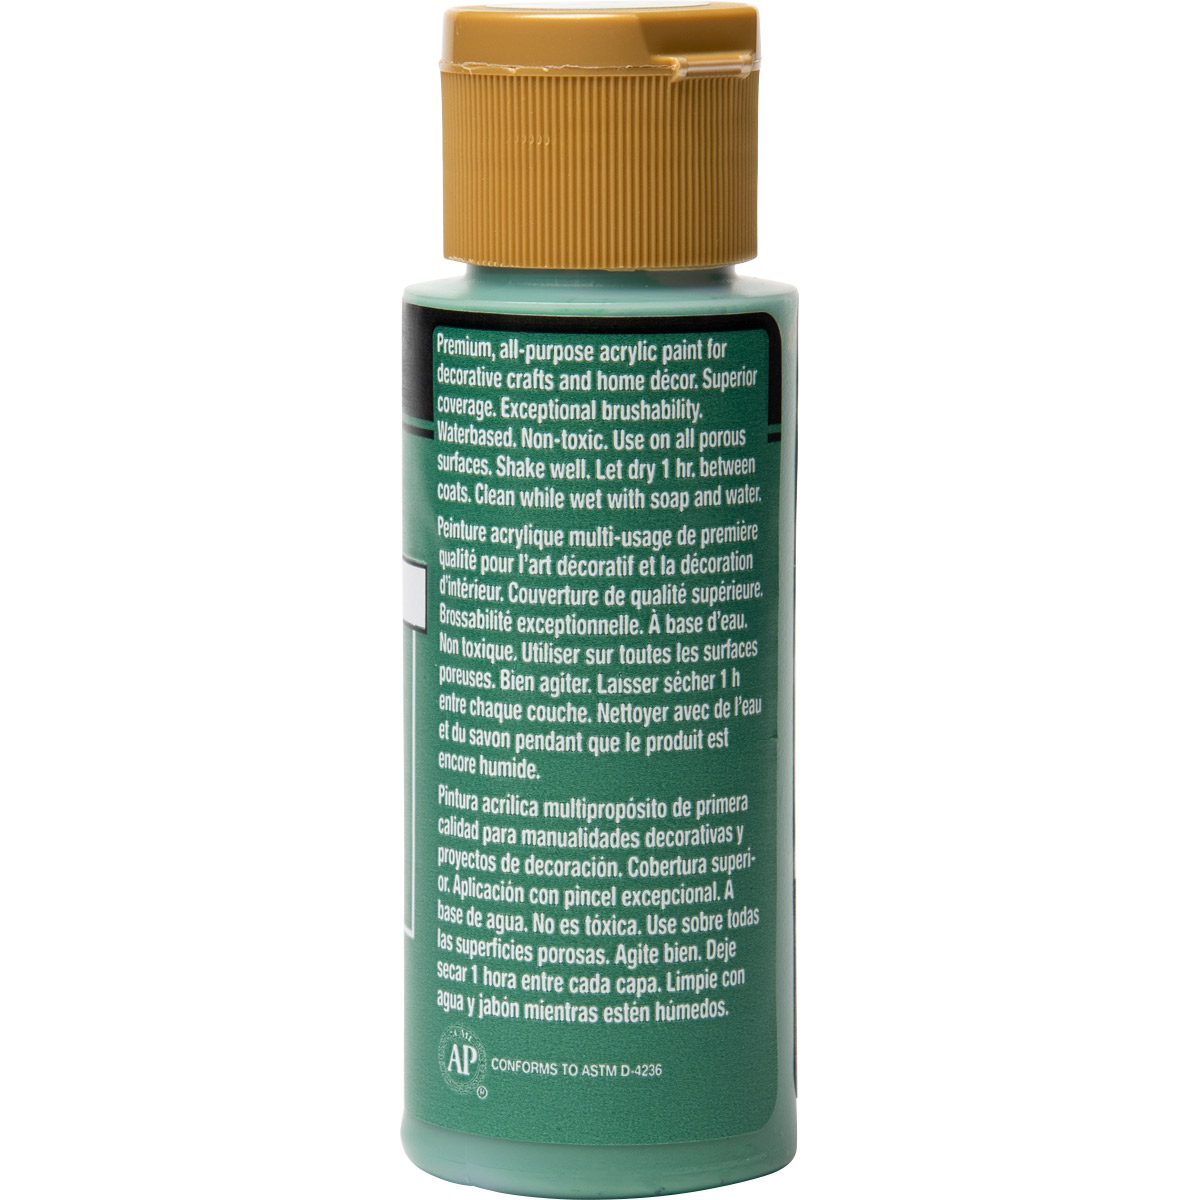 FolkArt ® Acrylic Colors - Smoky Jade, 2 oz.